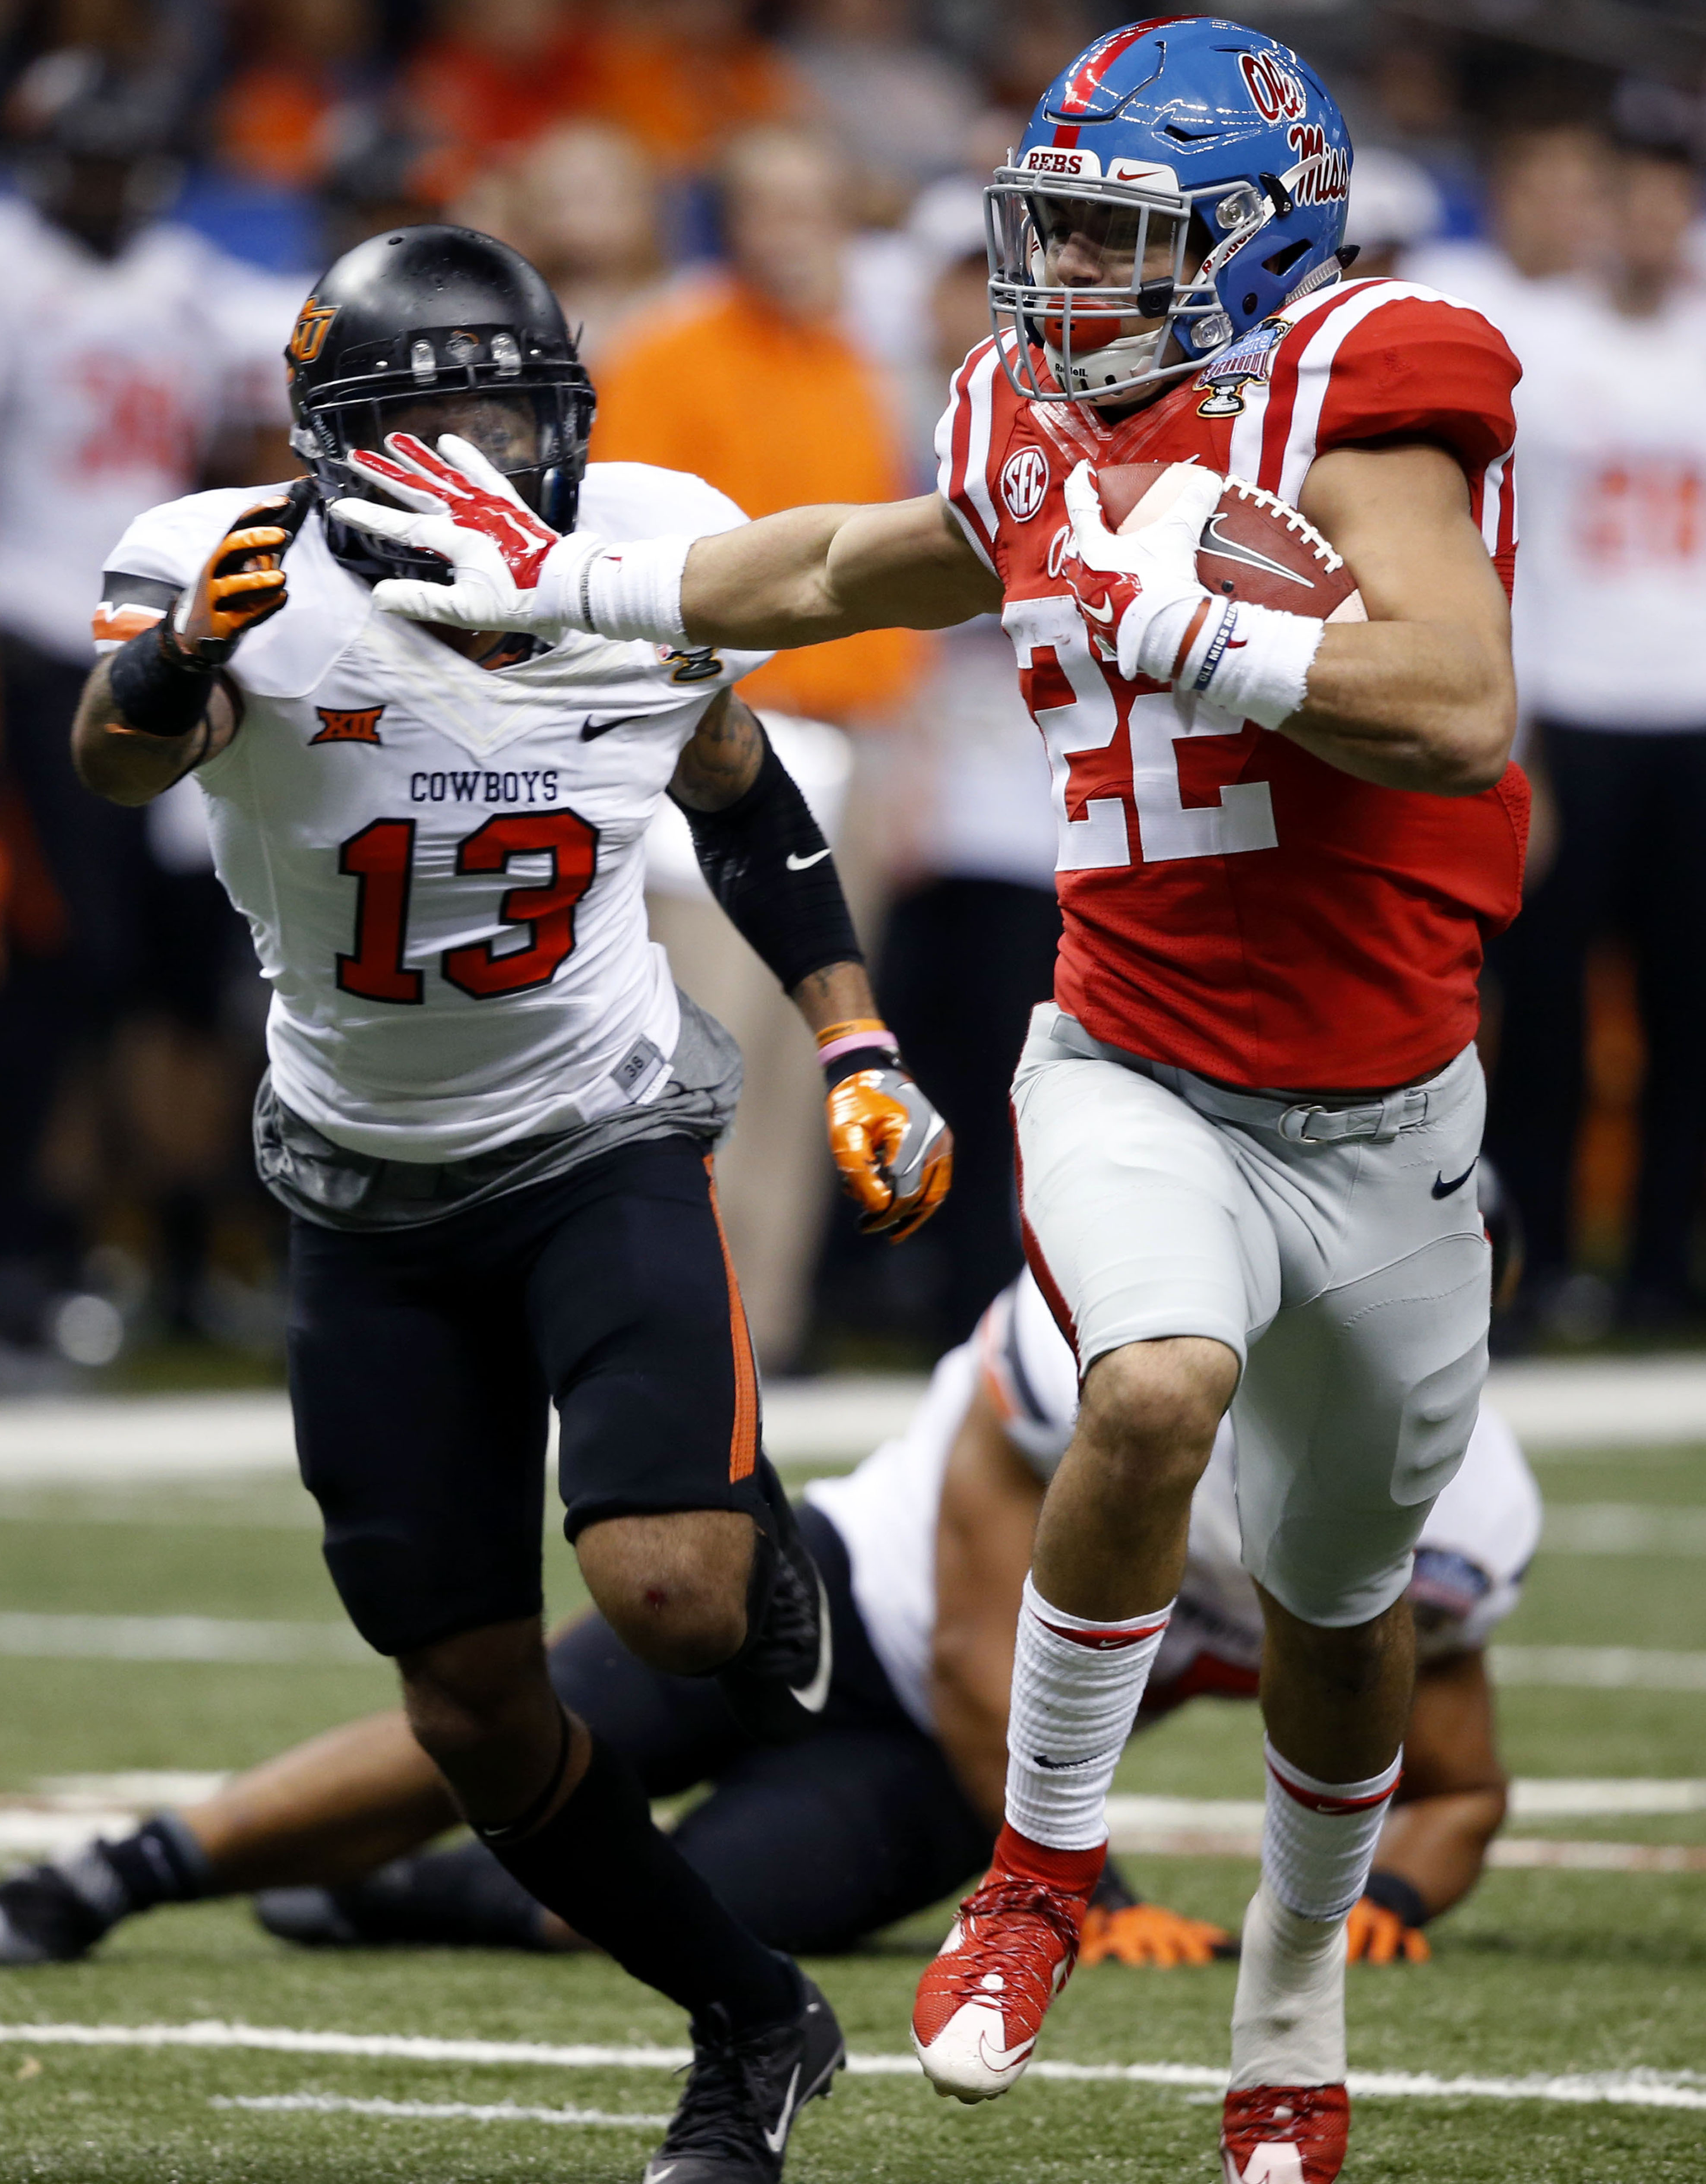 Mississippi running back Jordan Wilkins (22) carries for a touchdown as Oklahoma State safety Jordan Sterns (13) pursues in the second half of the Sugar Bowl college football game in New Orleans, Friday, Jan. 1, 2016. (AP Photo/Bill Feig)